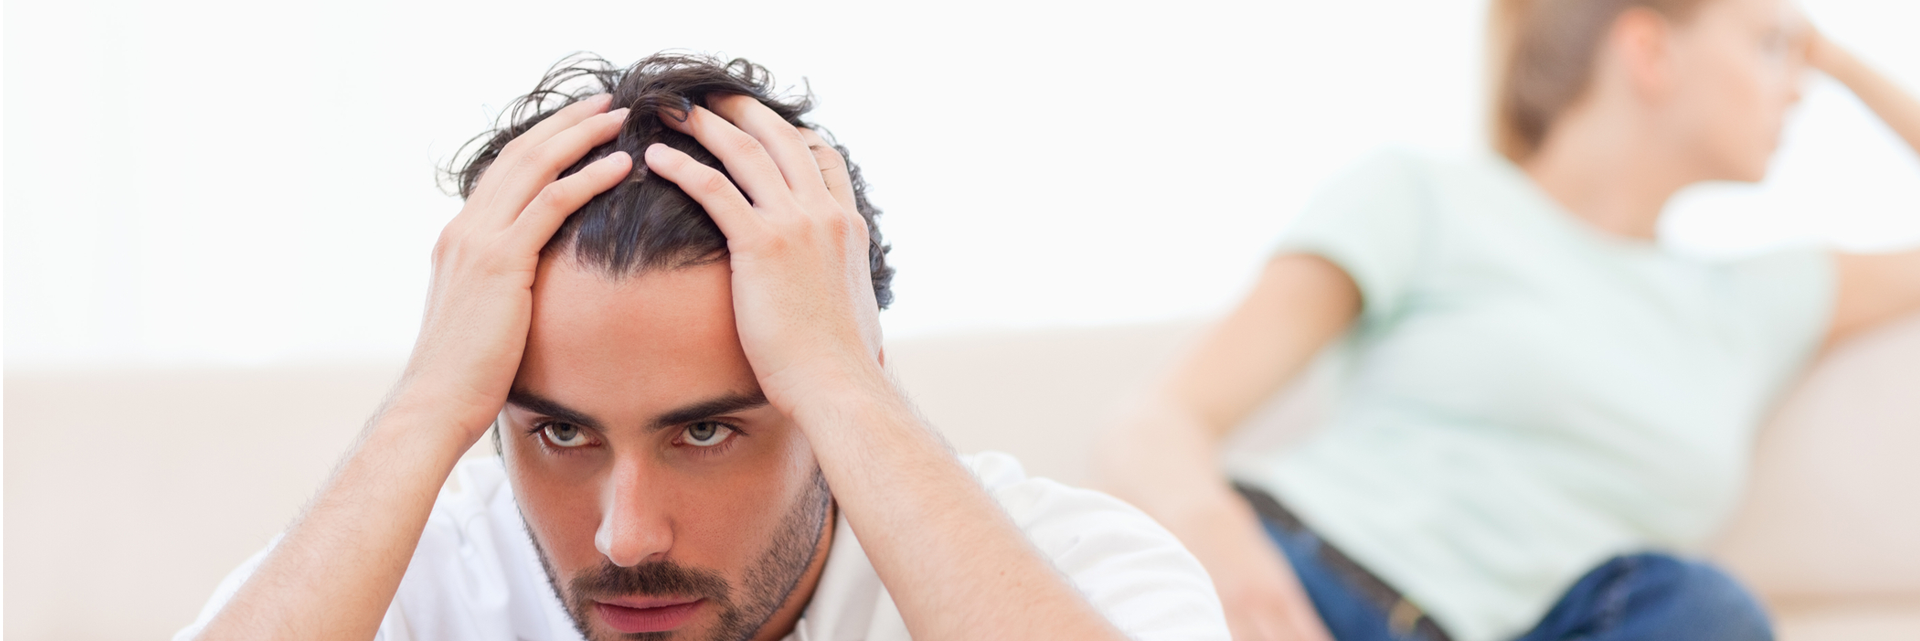 How To Resolve Your Inner Conflicts